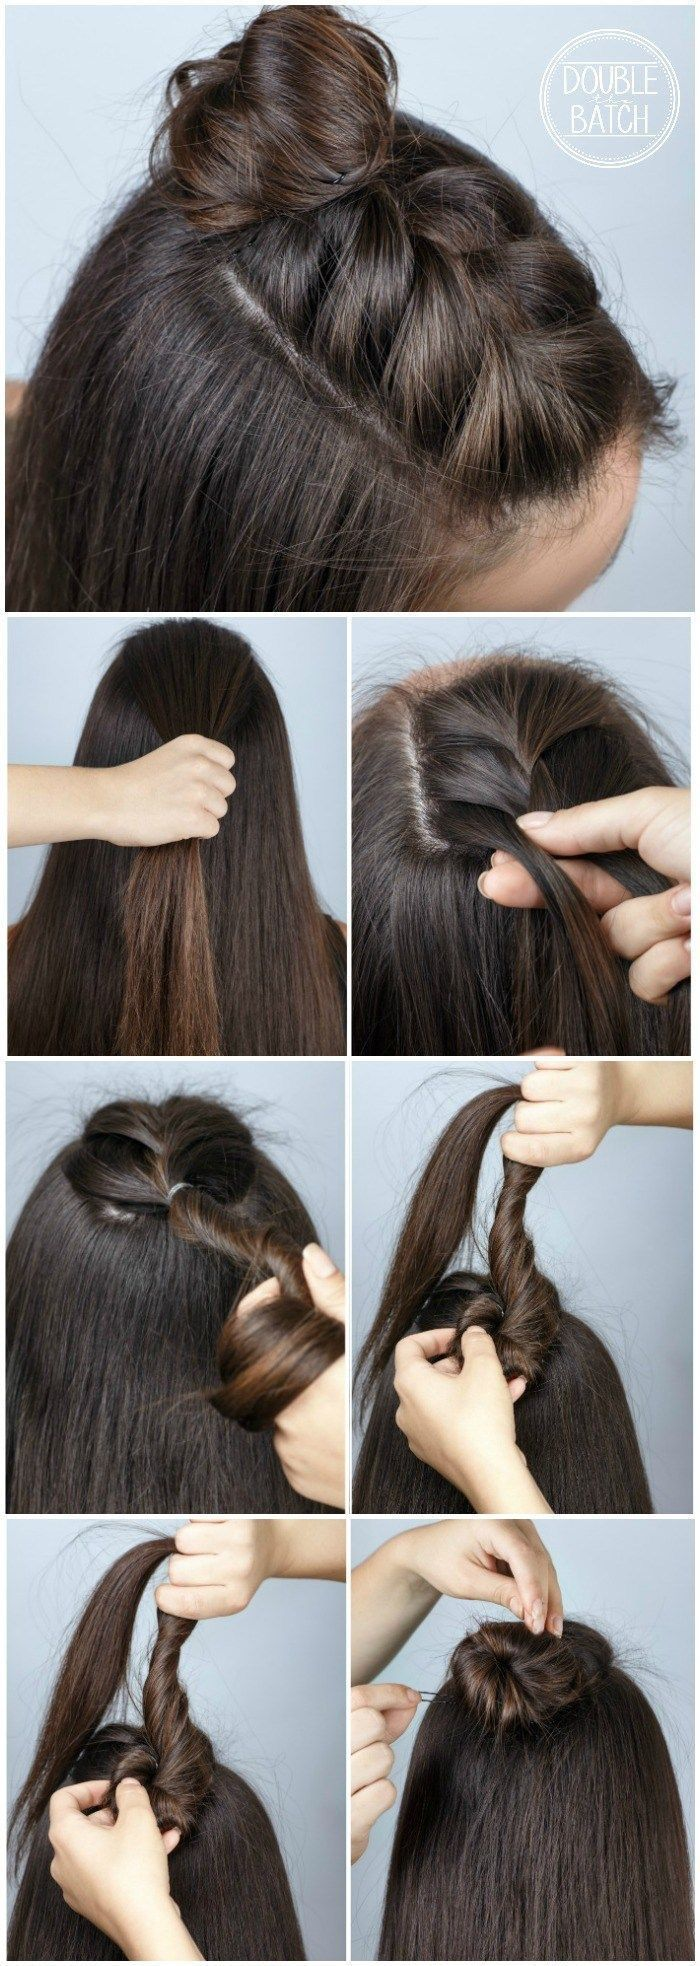 Easy hair ideas for school braid bun tumblr hairstyles